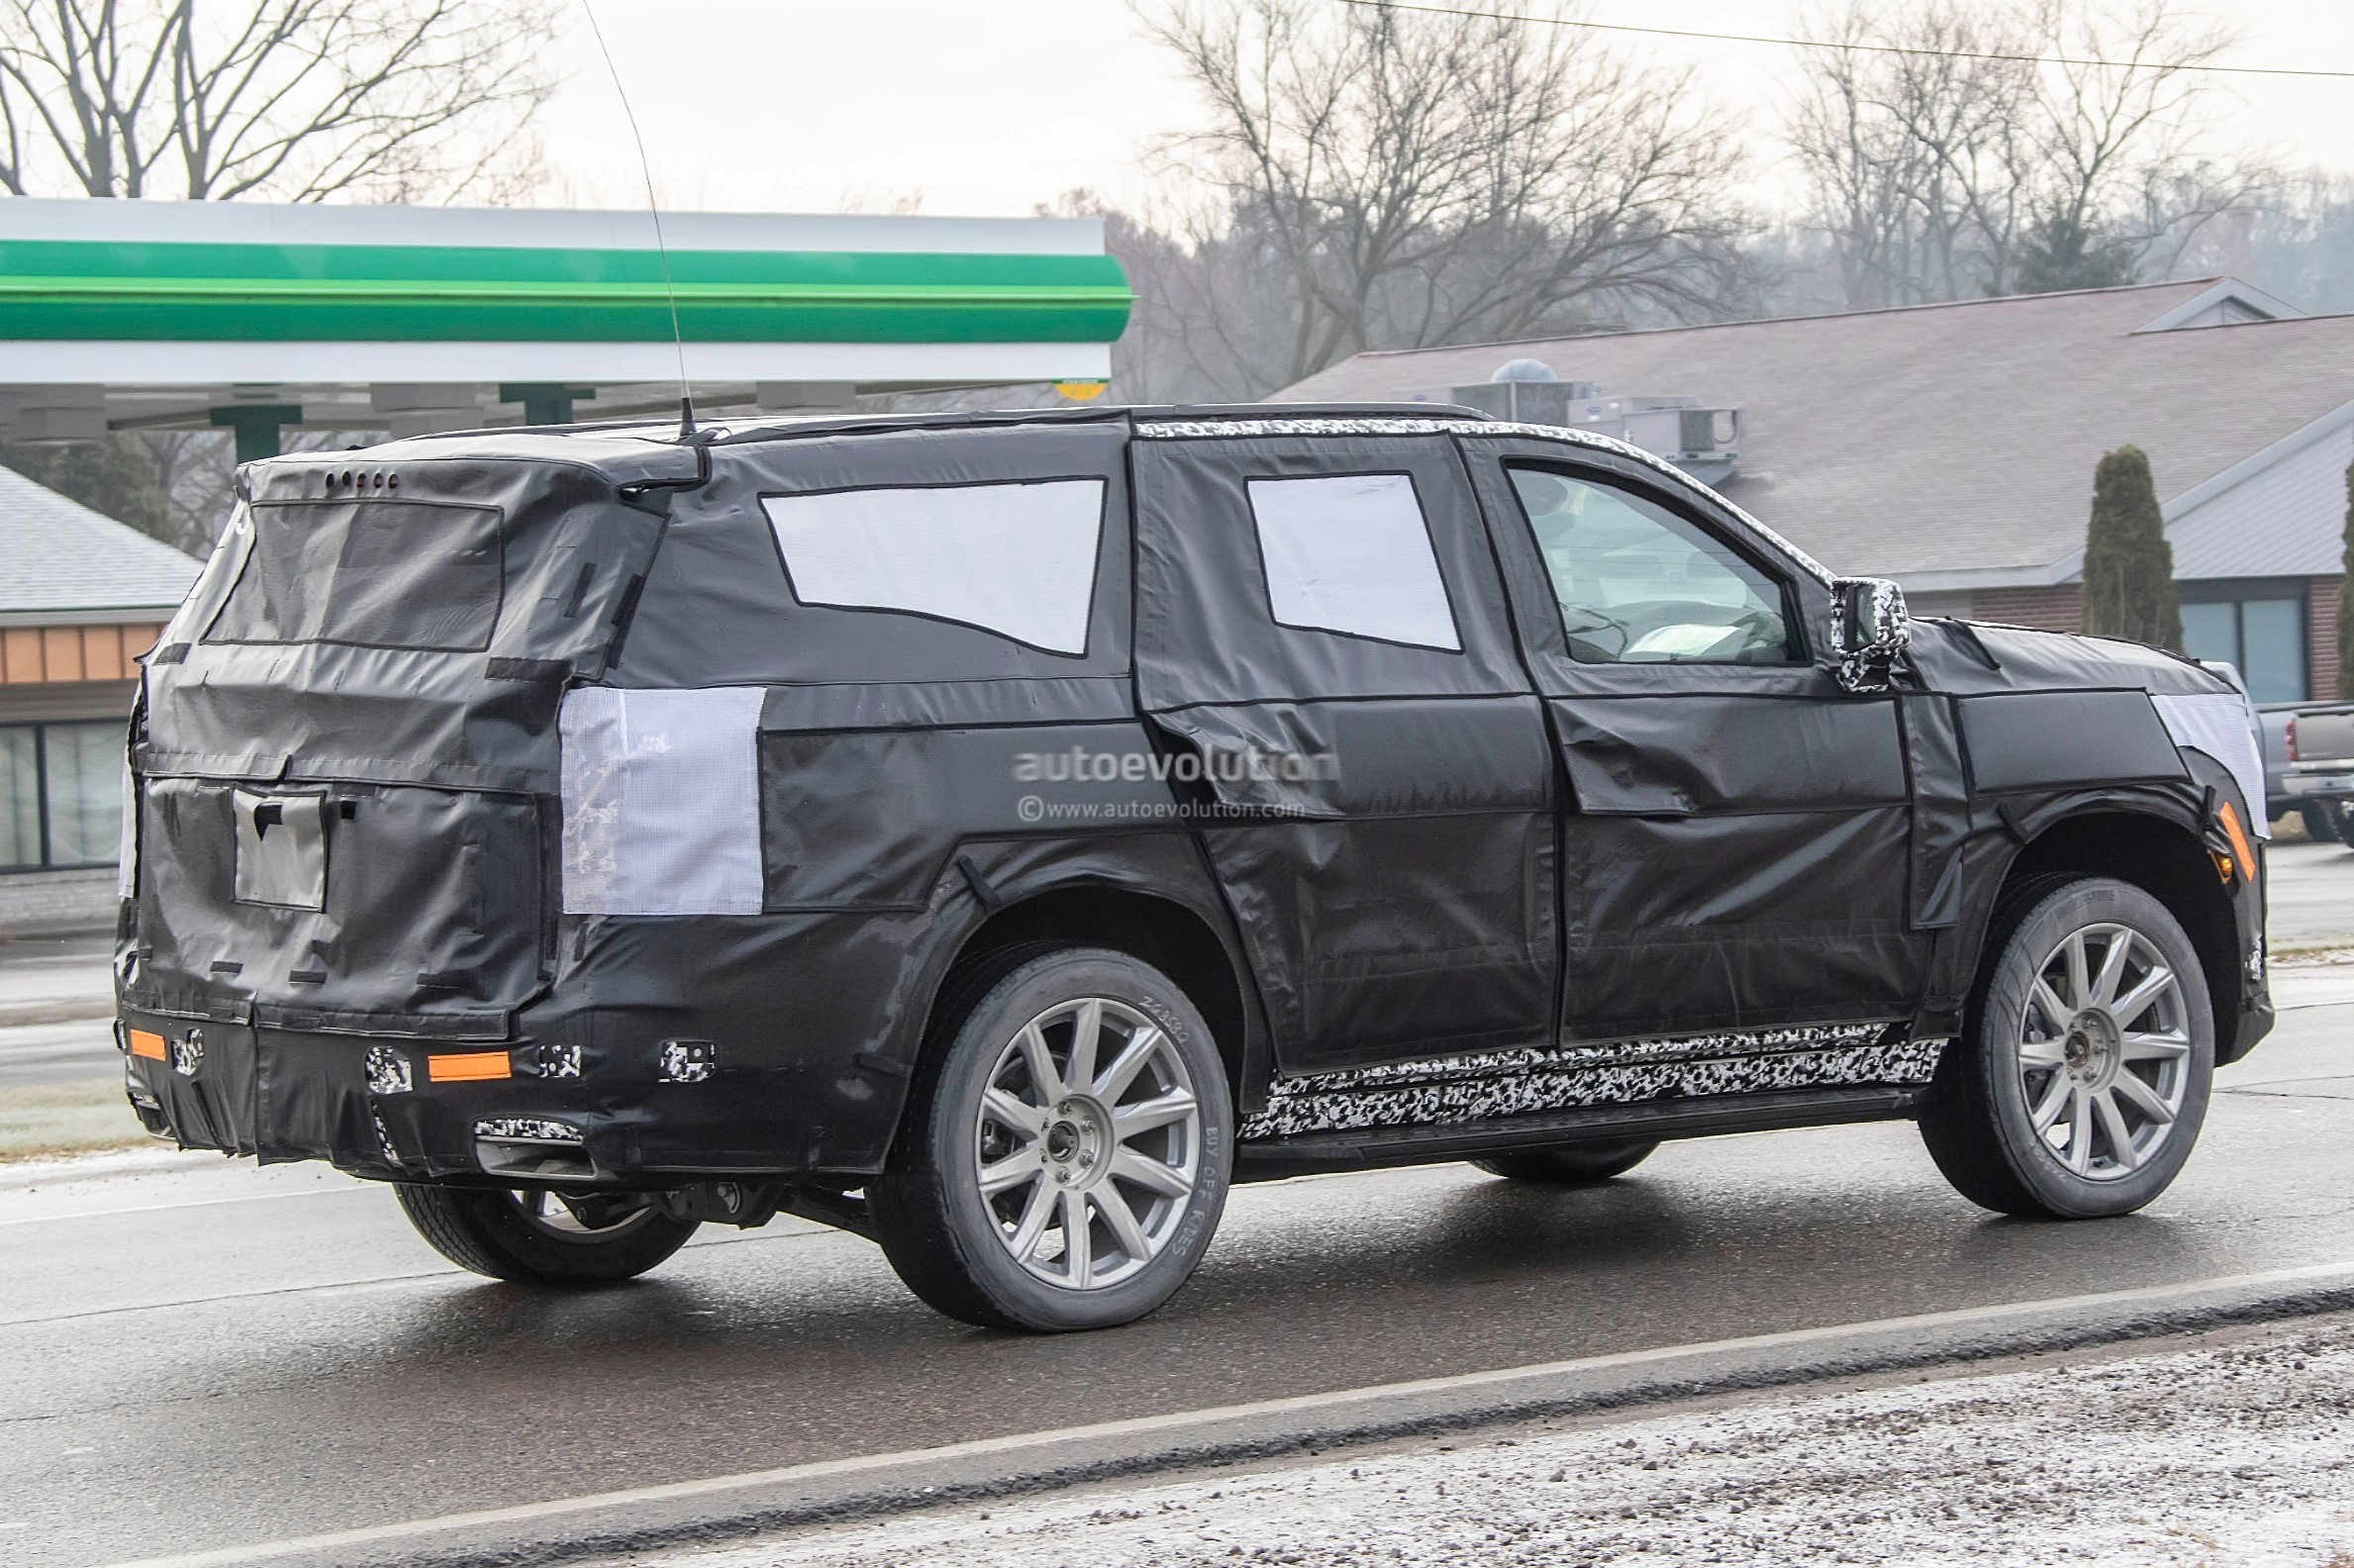 2020 Cadillac Escalade Spied With Makeshift Dodge Ram